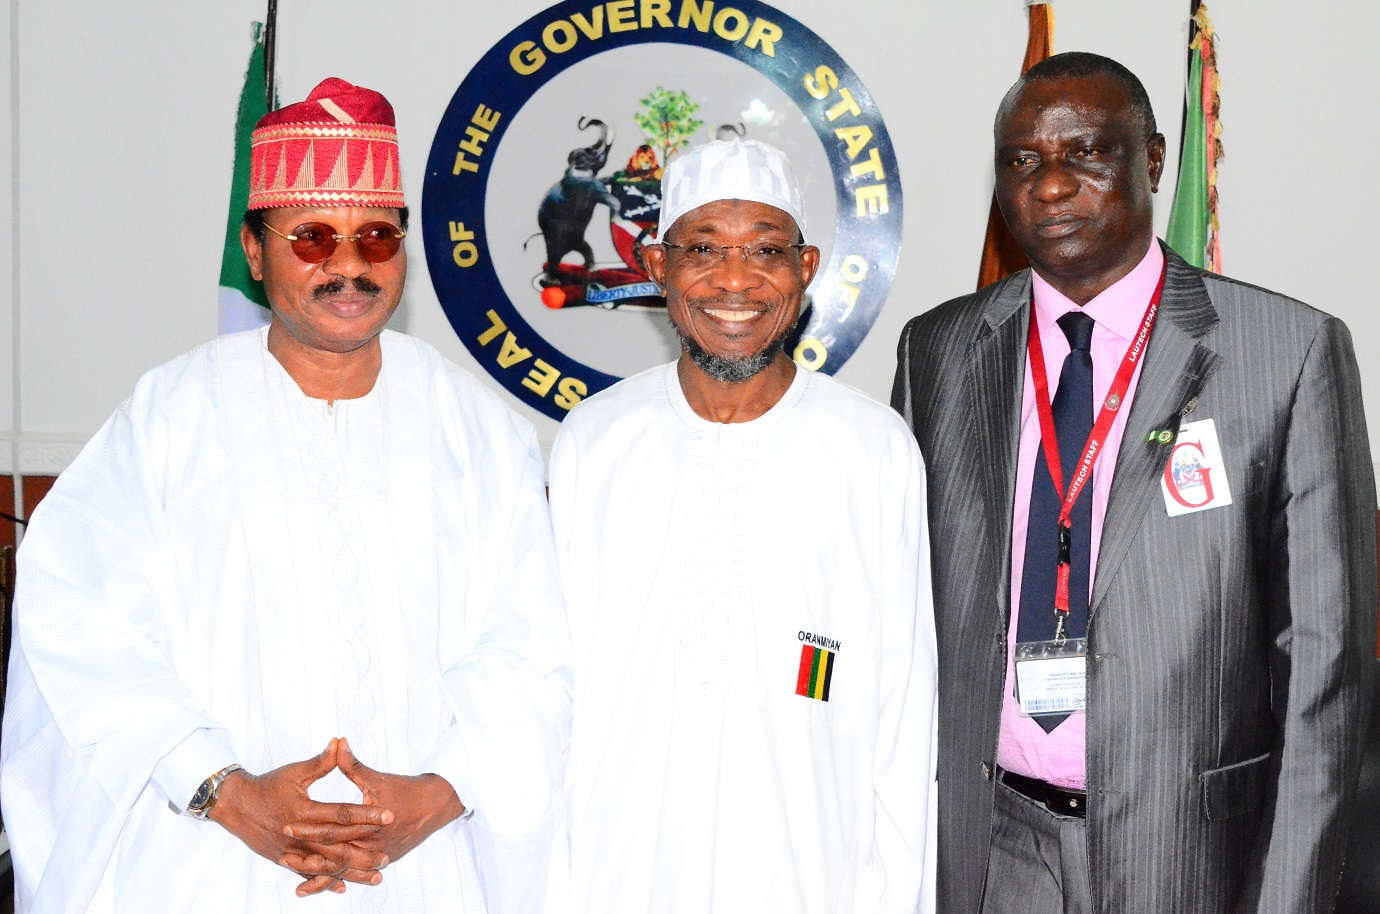 From left, Pro-Chancellor/Chairman of Council, Ladoke Akintola University of Technology (LAUTECH), Ogbomoso, Professor Wale Omole; Governor State of Osun, Ogbeni Rauf Aregbesola and Vice Chancellor, LAUTECH Ogbomoso, Professor Adeniyi Gbadegesin, during a Congratulatory and Courtesy Visit to the Governor, by Council Members and Management Team of LAUTECH at Government House, Osogbo, State of Osun on Wednesday 27-08-2014